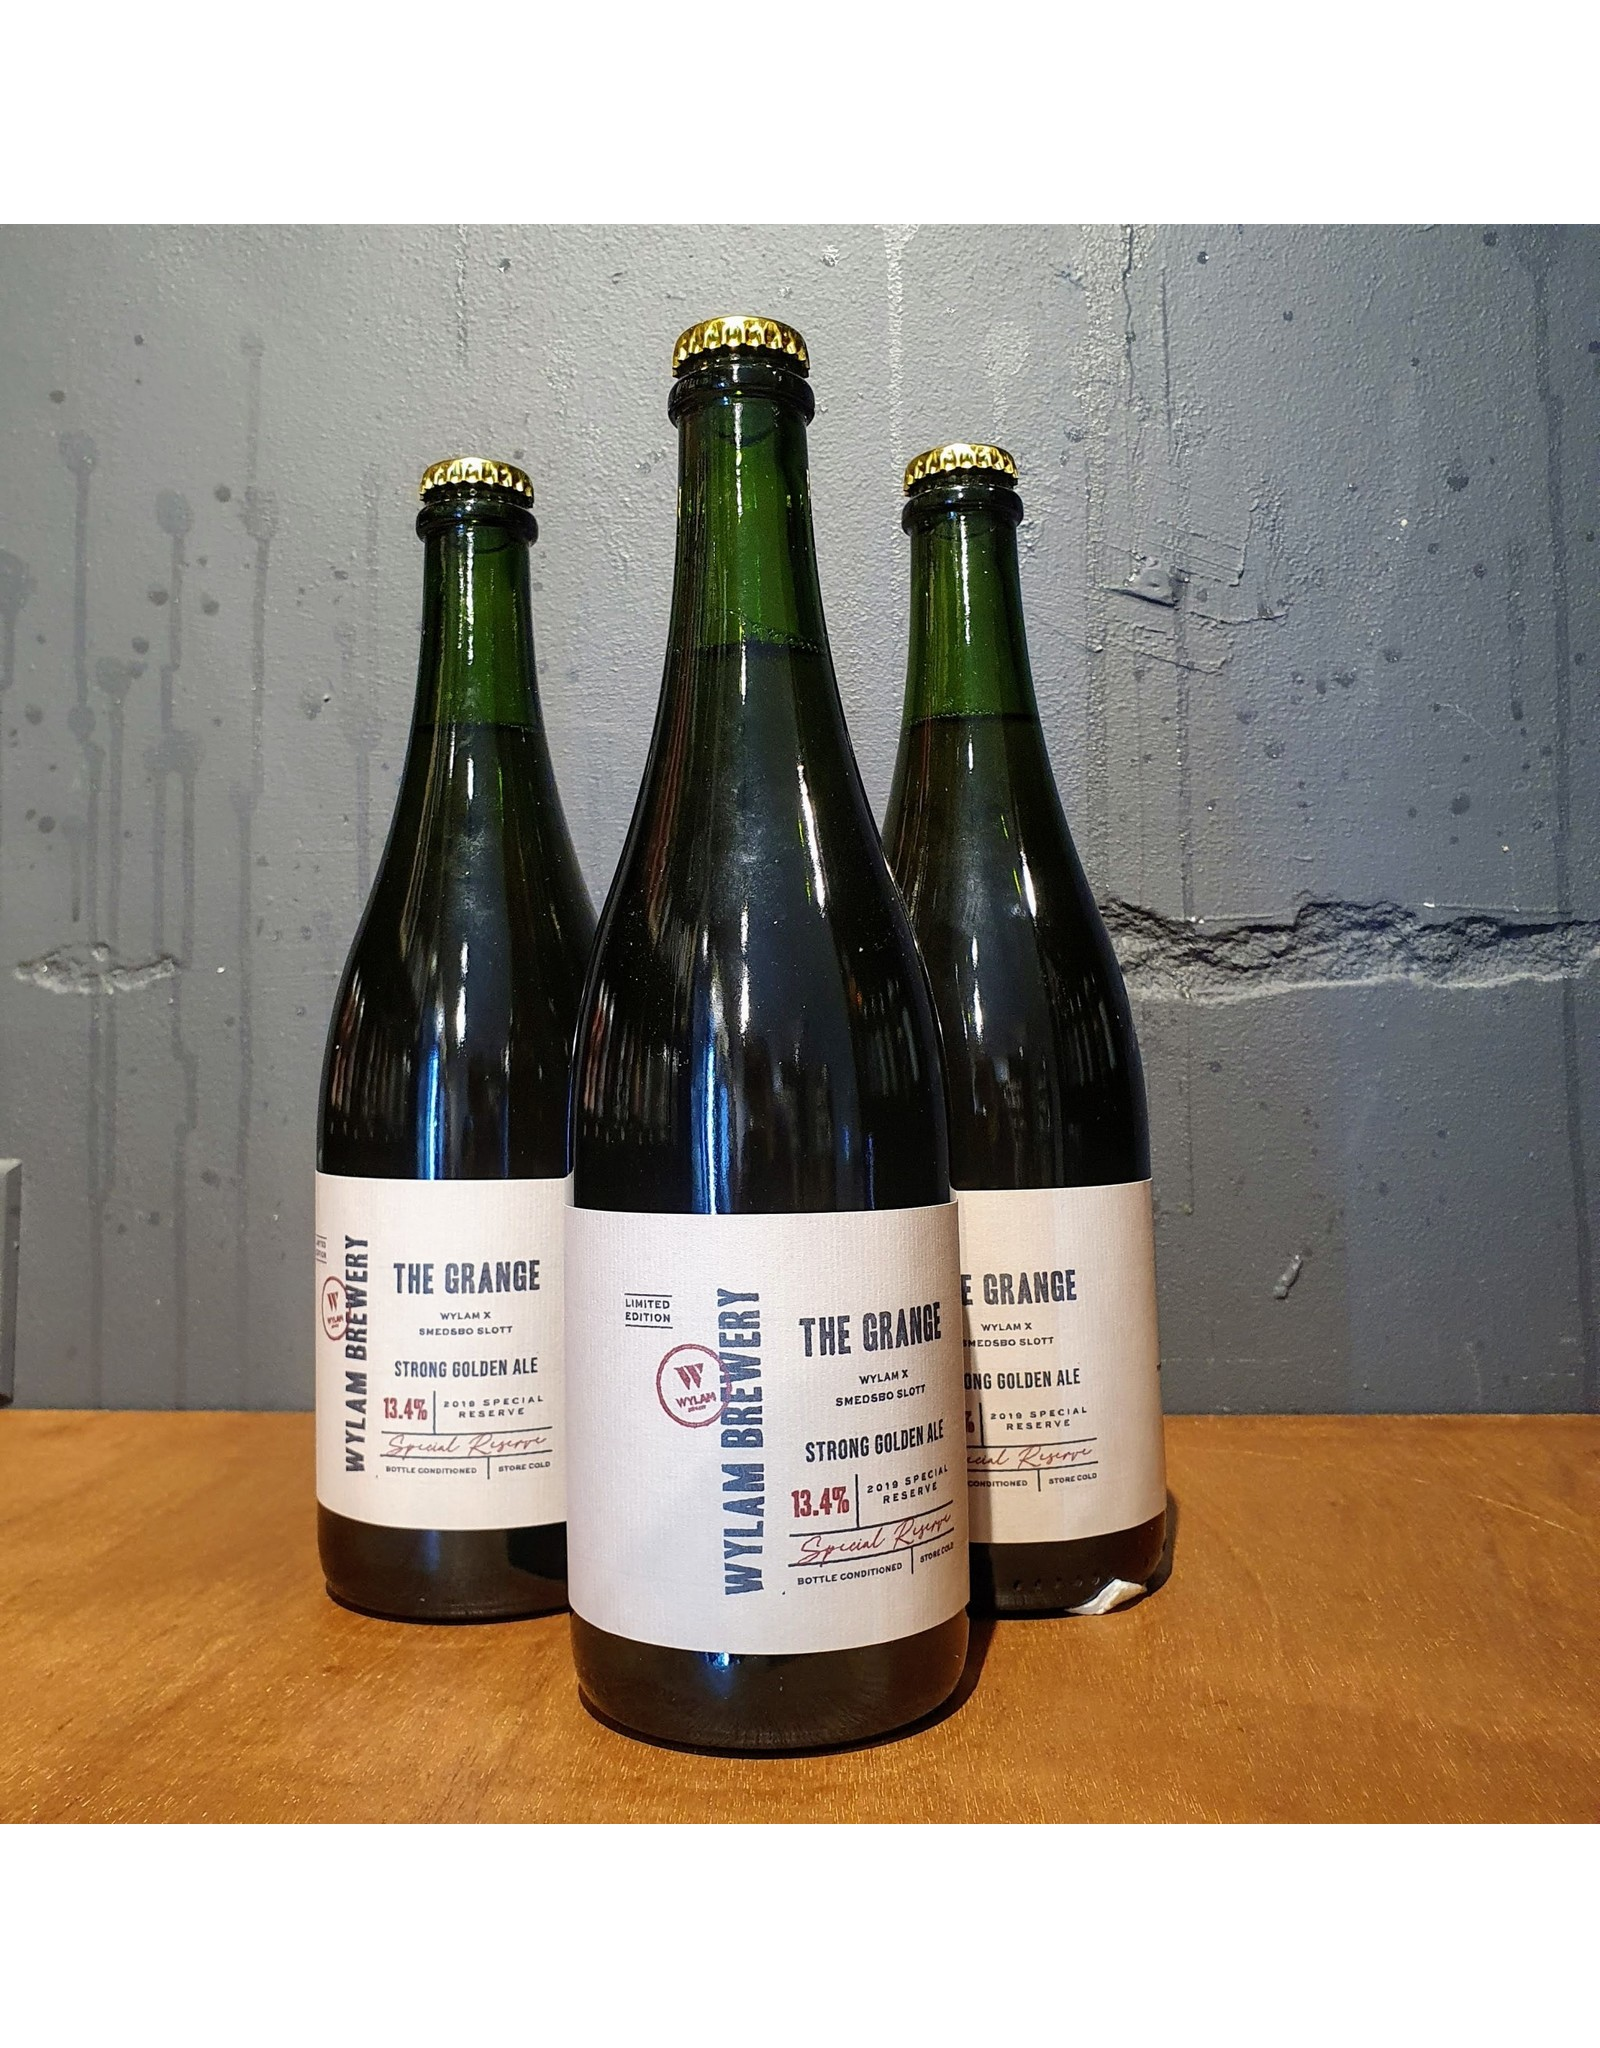 Wylam - The Grange (2019 Special Reserve)